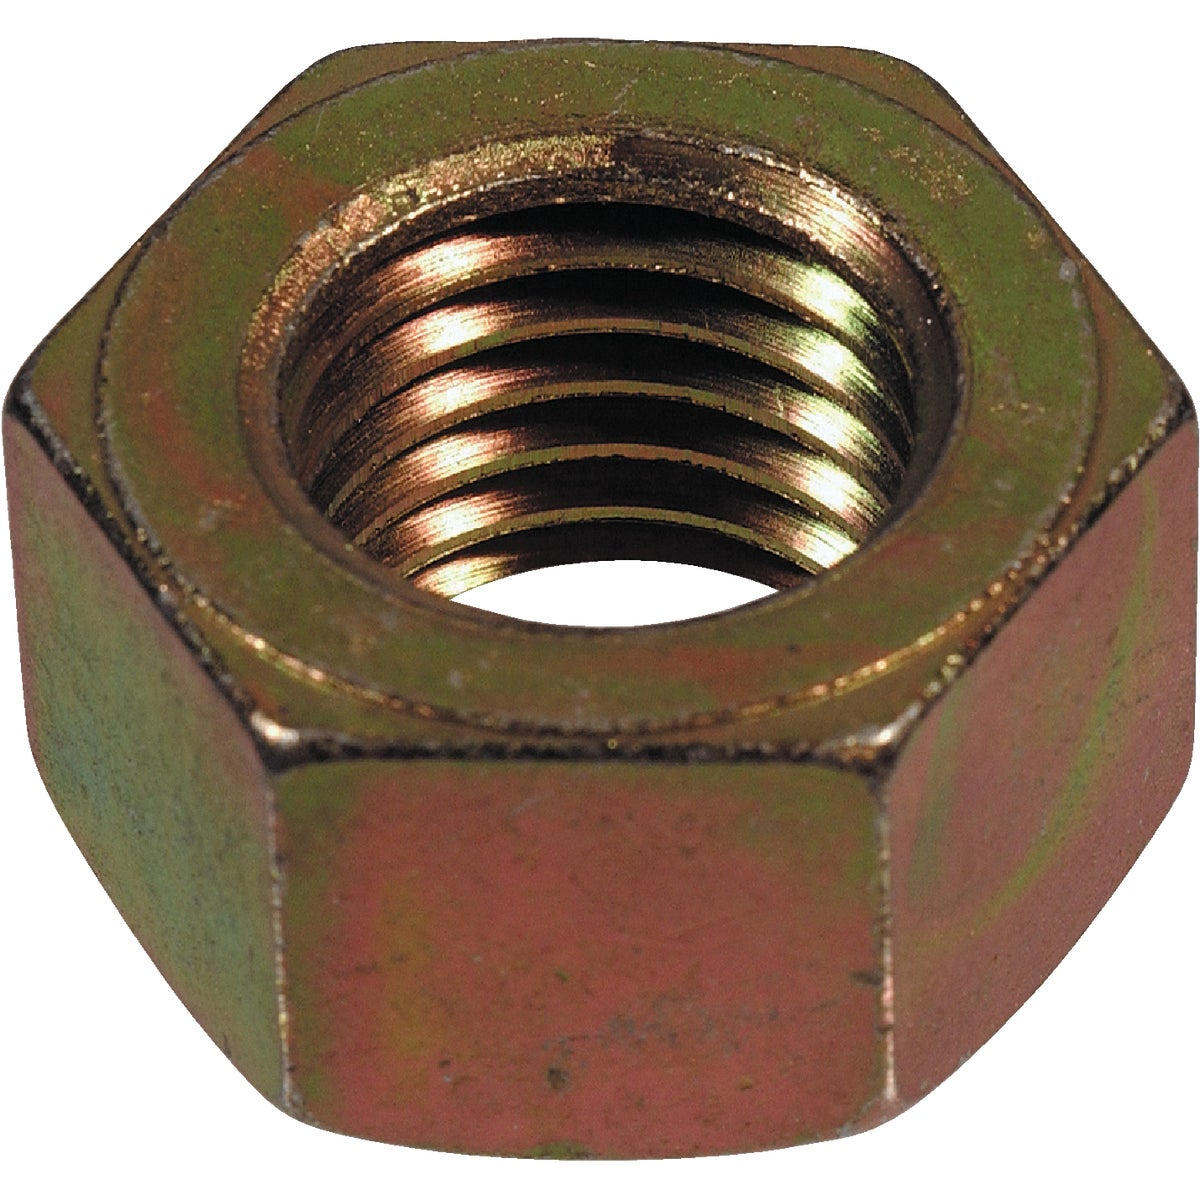 3/8-16 YC G8 HEX NUT - 180406 by Hillman Fastener